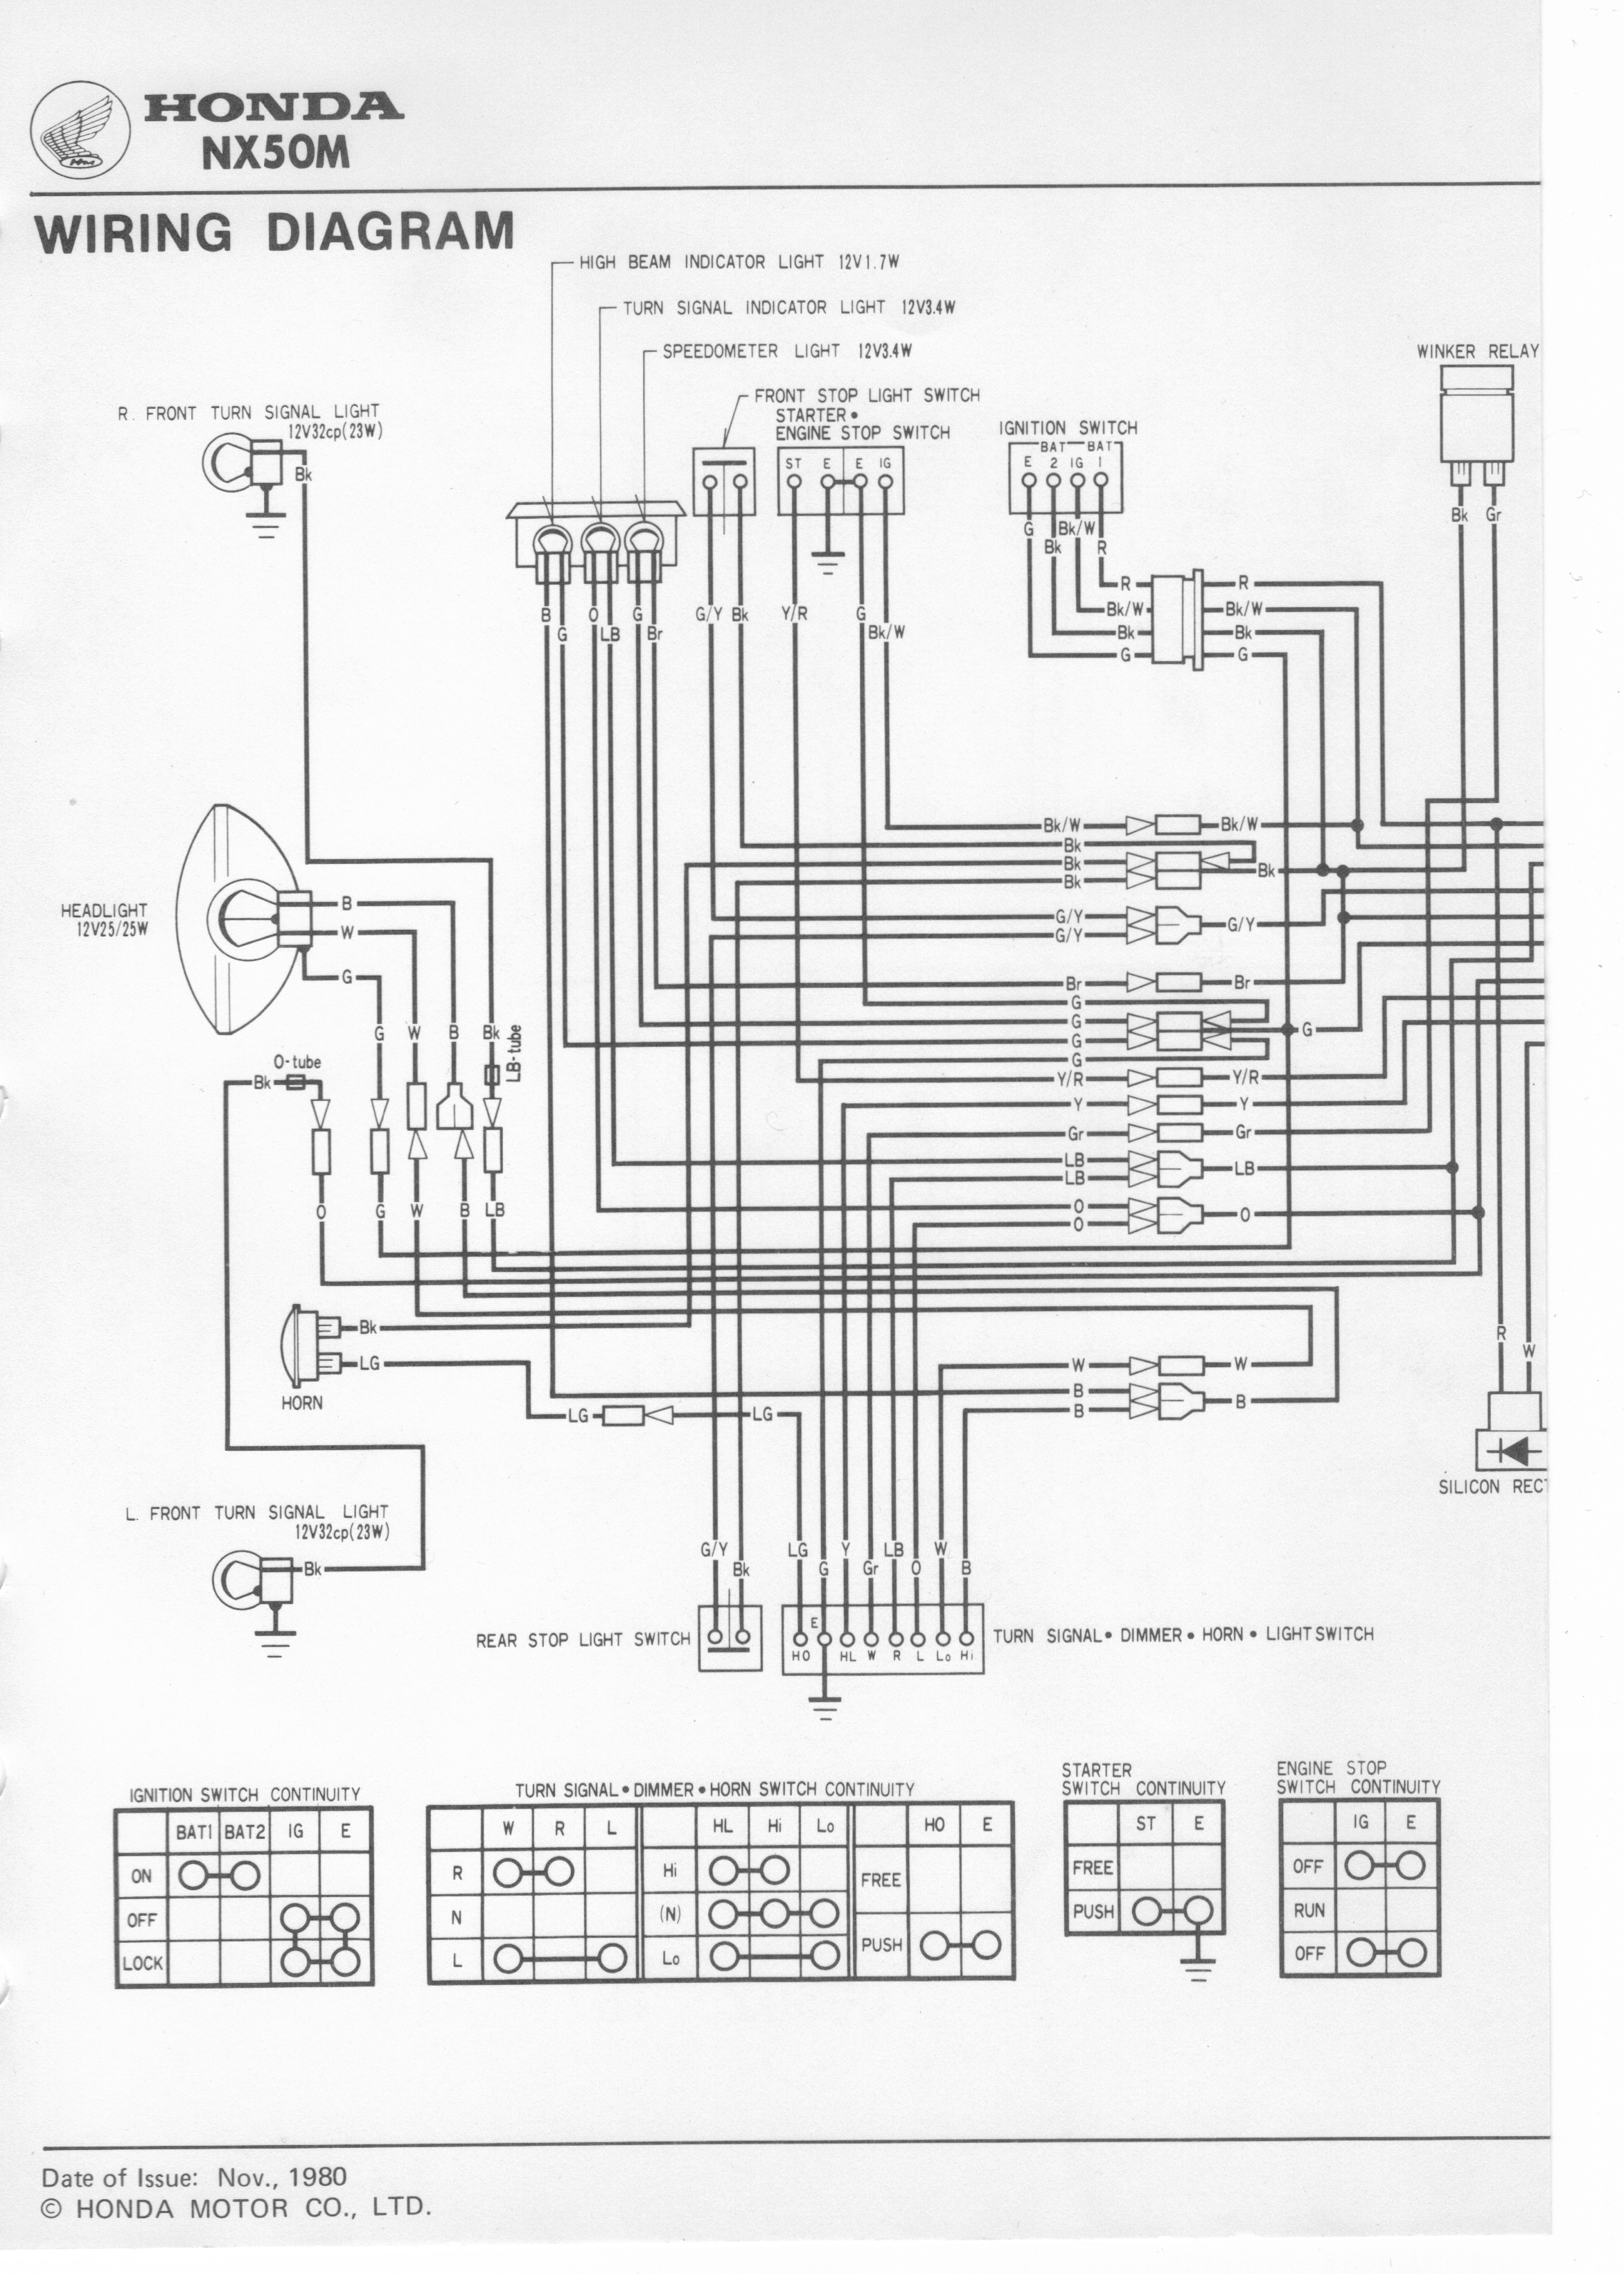 Honda Cm400e Wiring Diagram And Schematics 1981 Cm400 Cm400t Data Diagrams Source 1982 Express Electrical Example Rh Huntervalleyhotels Co